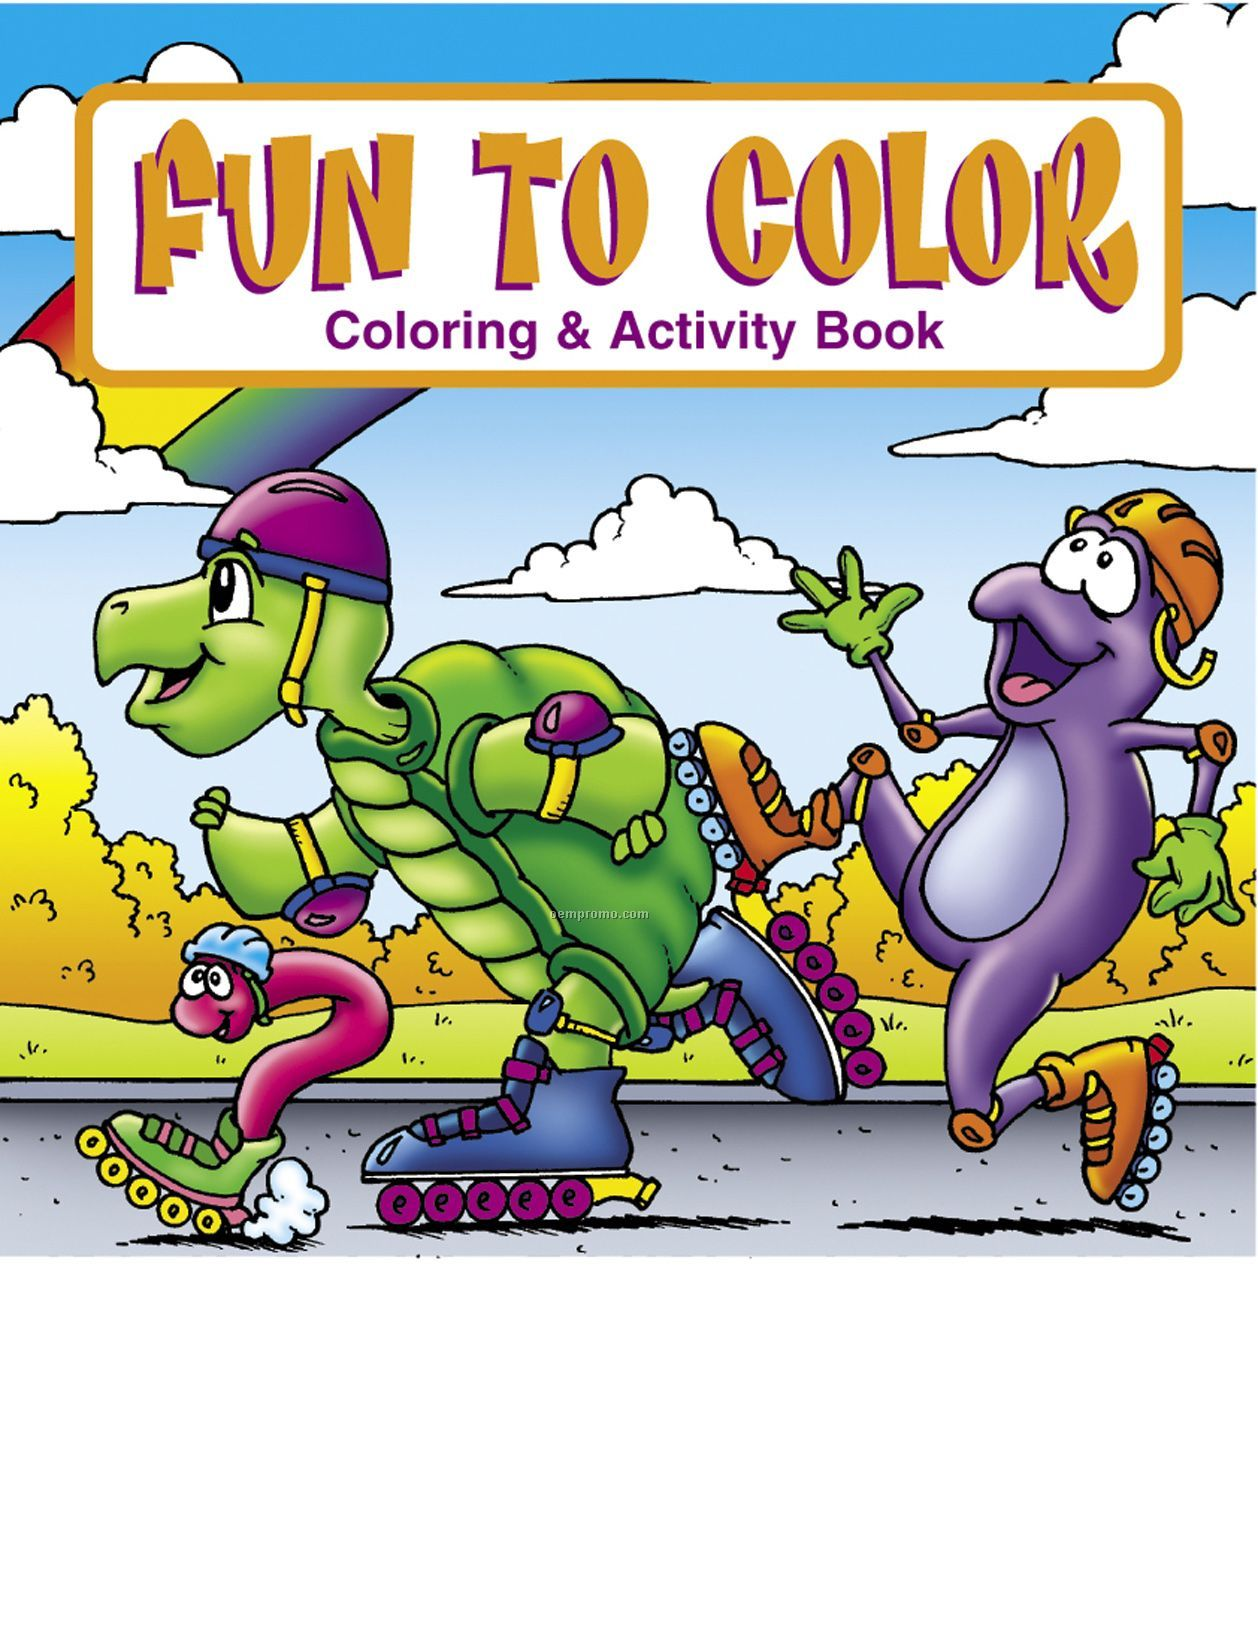 Coloring BooksChina Wholesale Coloring Books Page